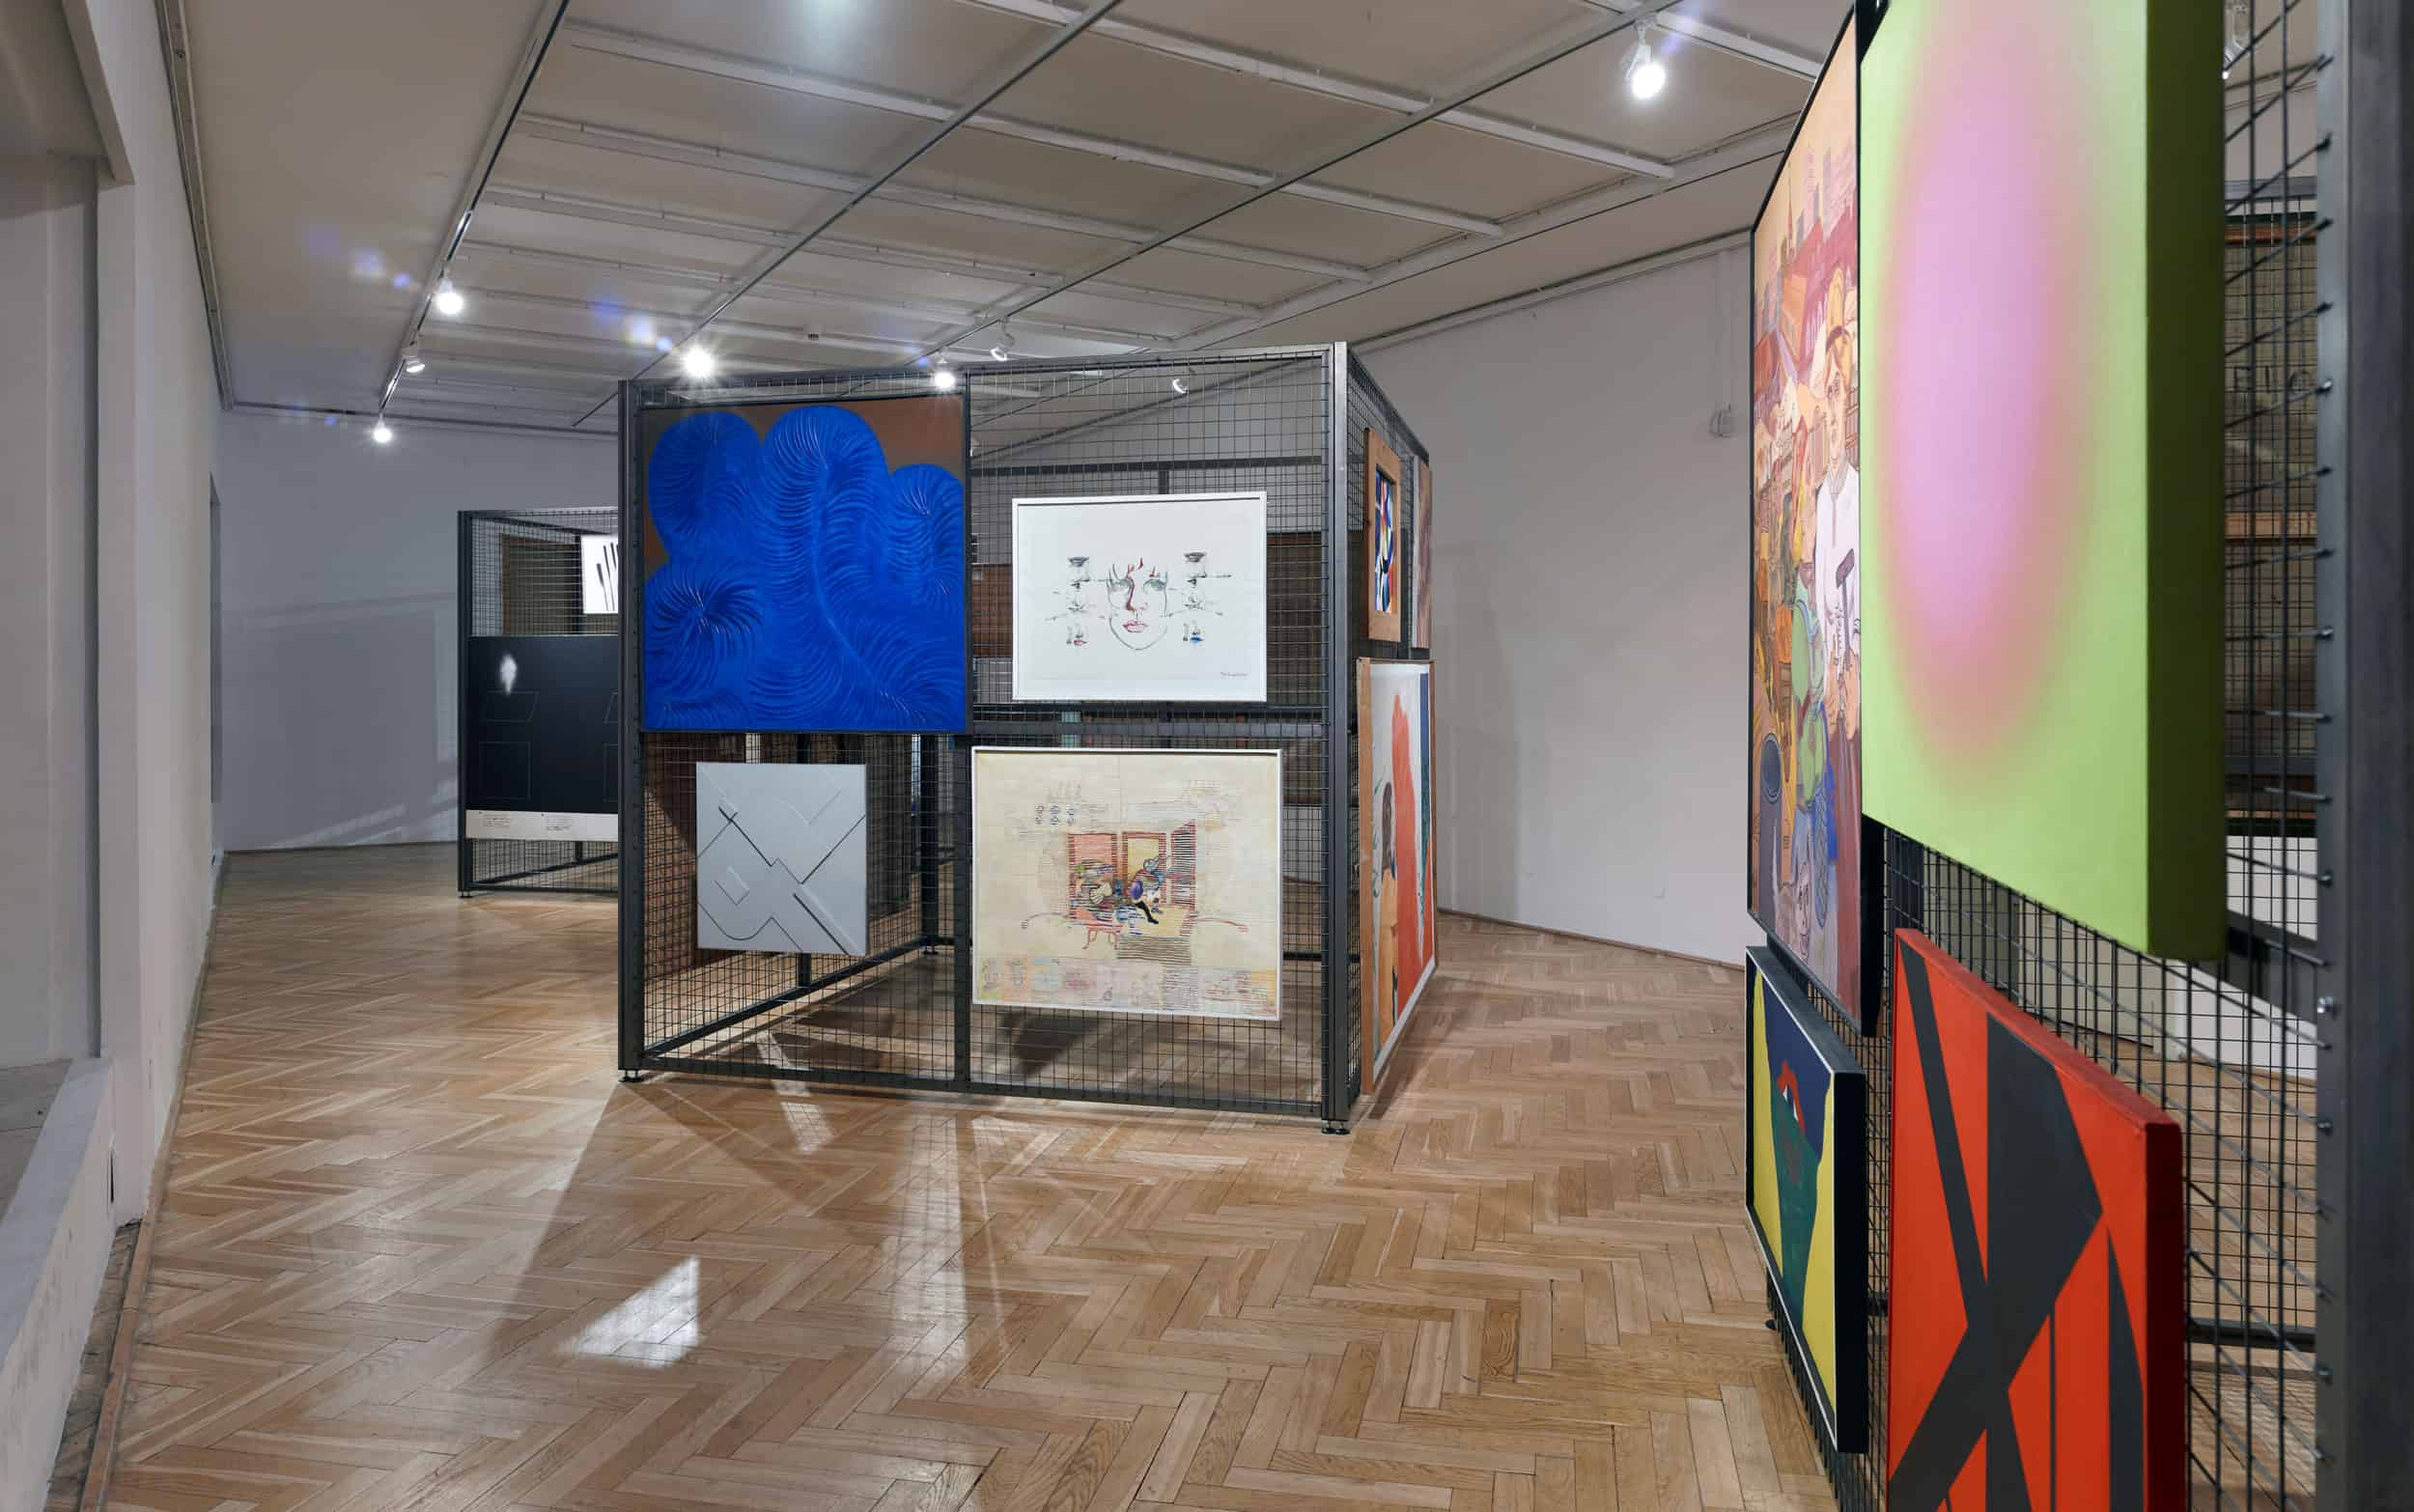 Exhibition view: THE GALERIA STUDIO COLLECTION IN WARSAW, photo: Błażej Pindor, courtesy Studio Gallery